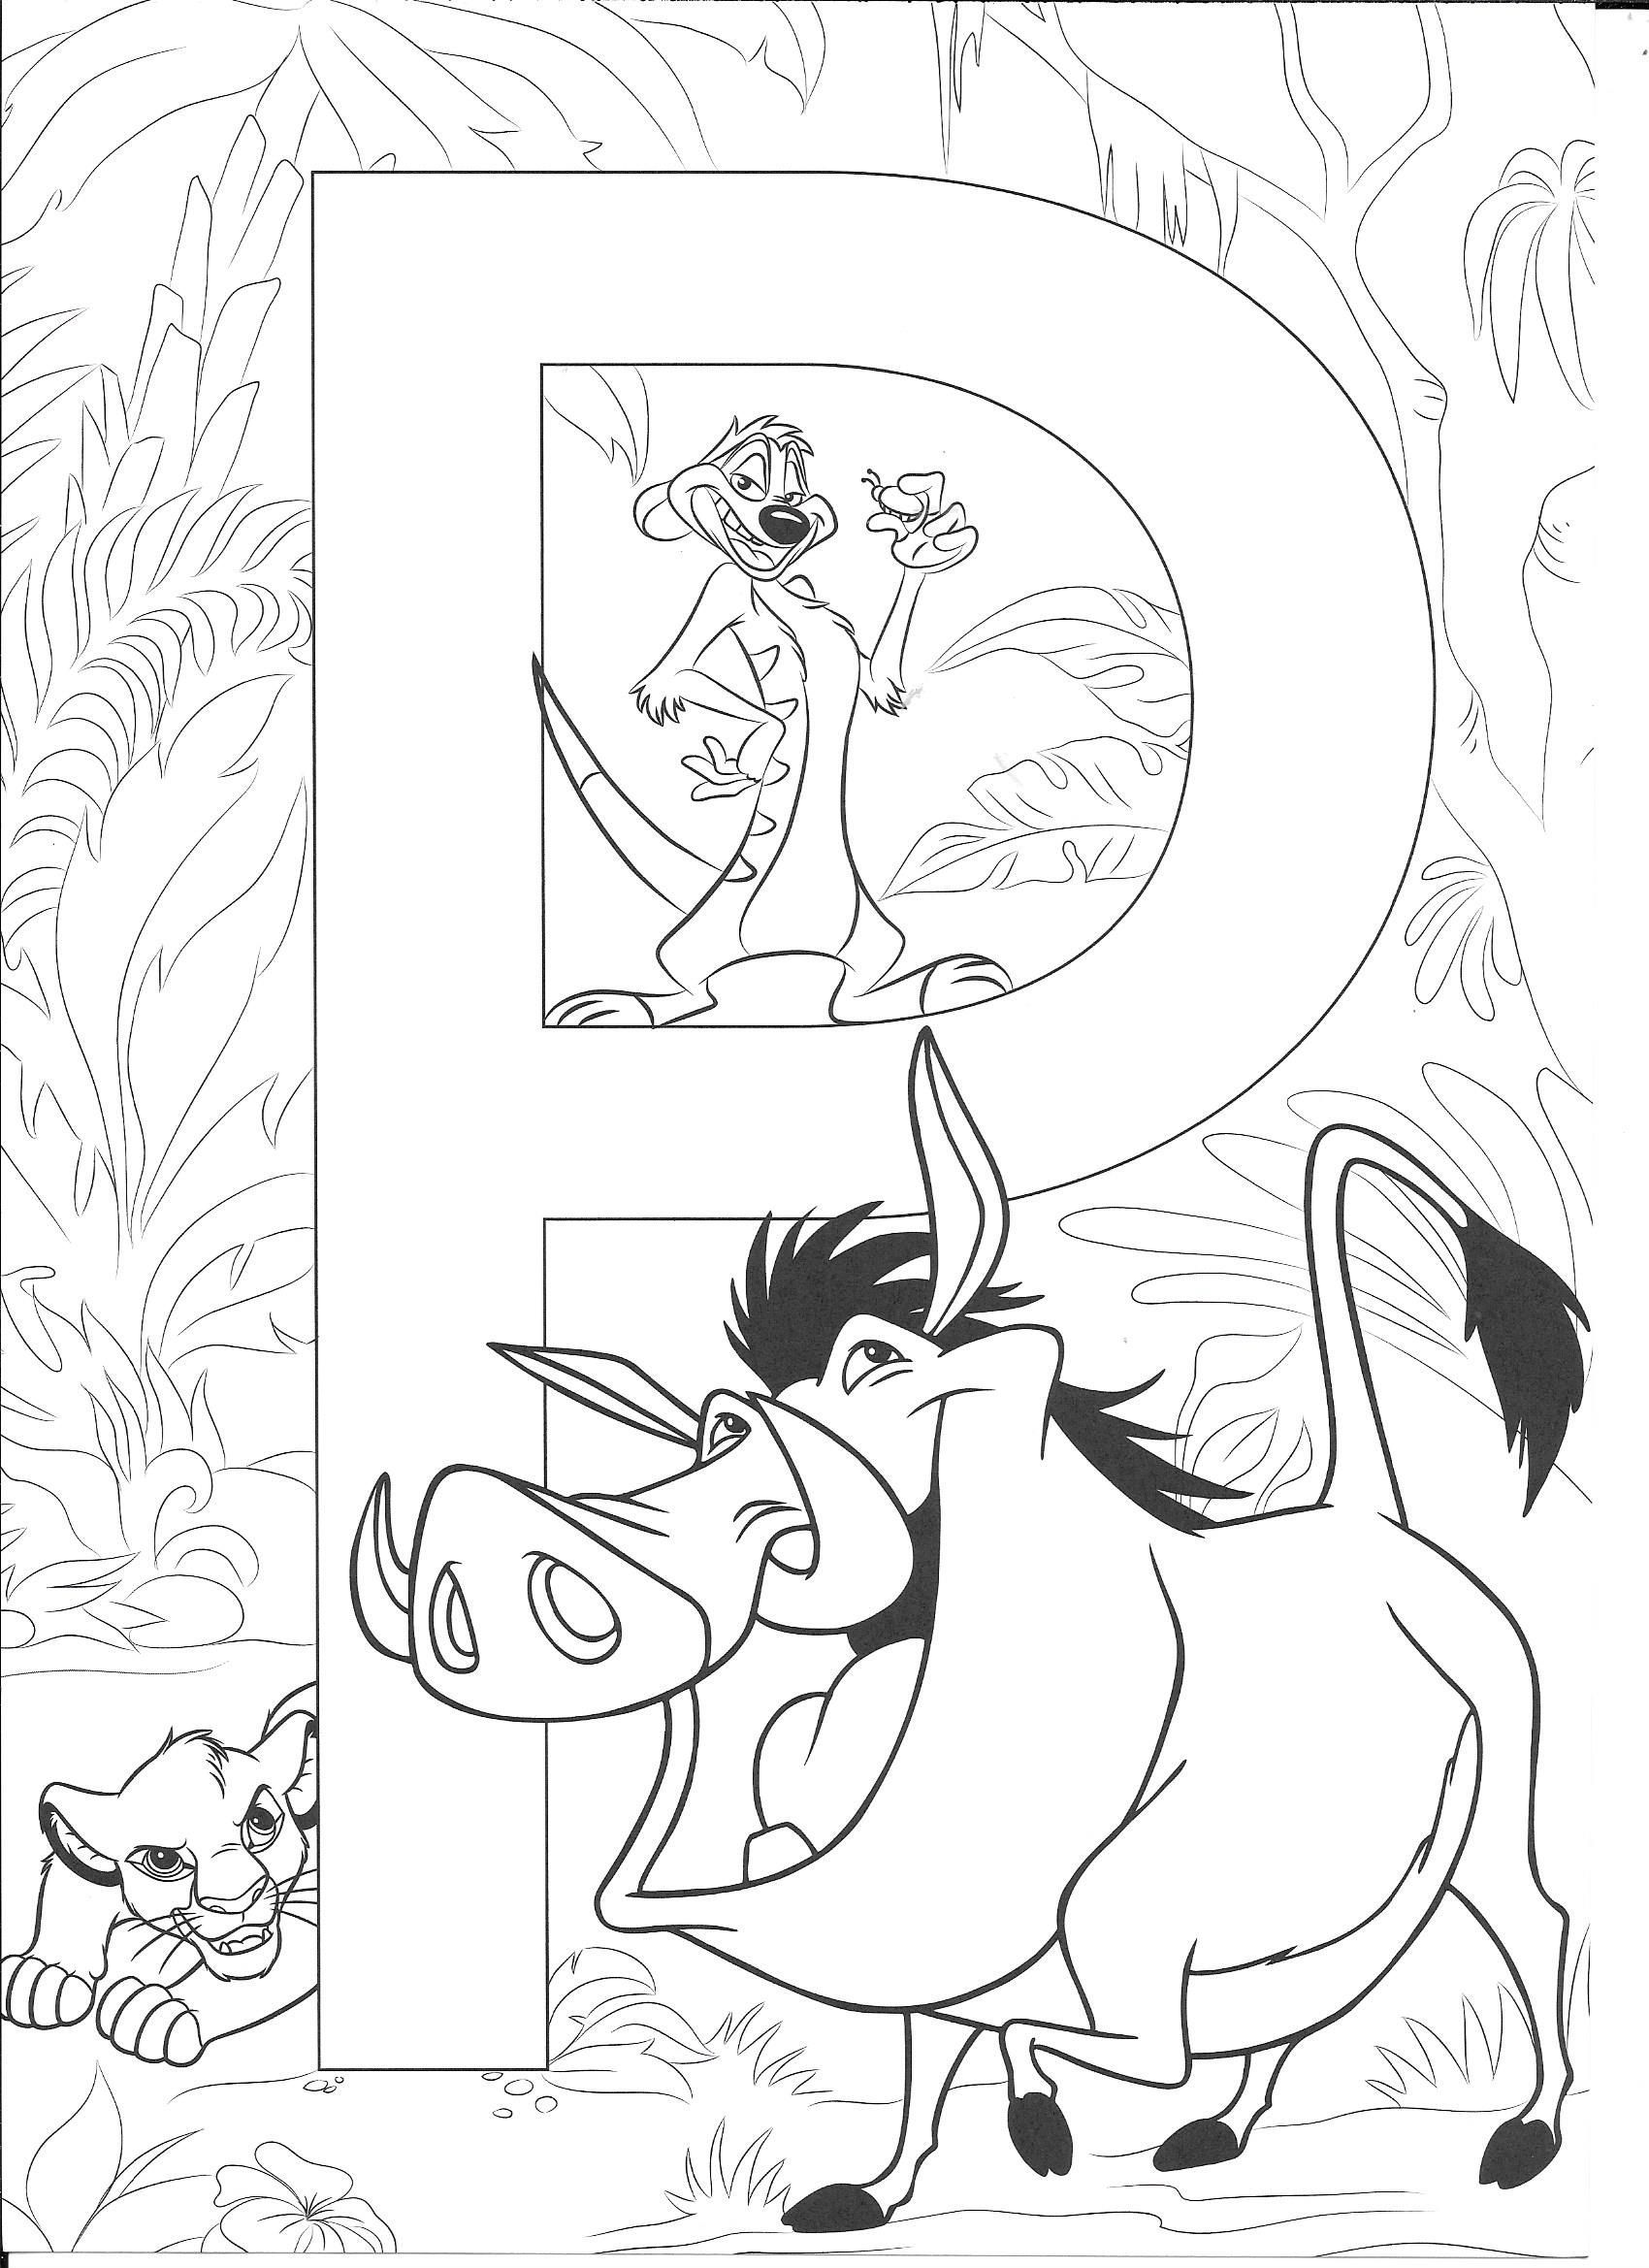 The Lion King Coloring Page Letter P With Timone Pumba And Simba Oursweetserendipity Com 2019 Disney Coloring Pages Disney Alphabet Disney Coloring Sheets [ 2338 x 1700 Pixel ]